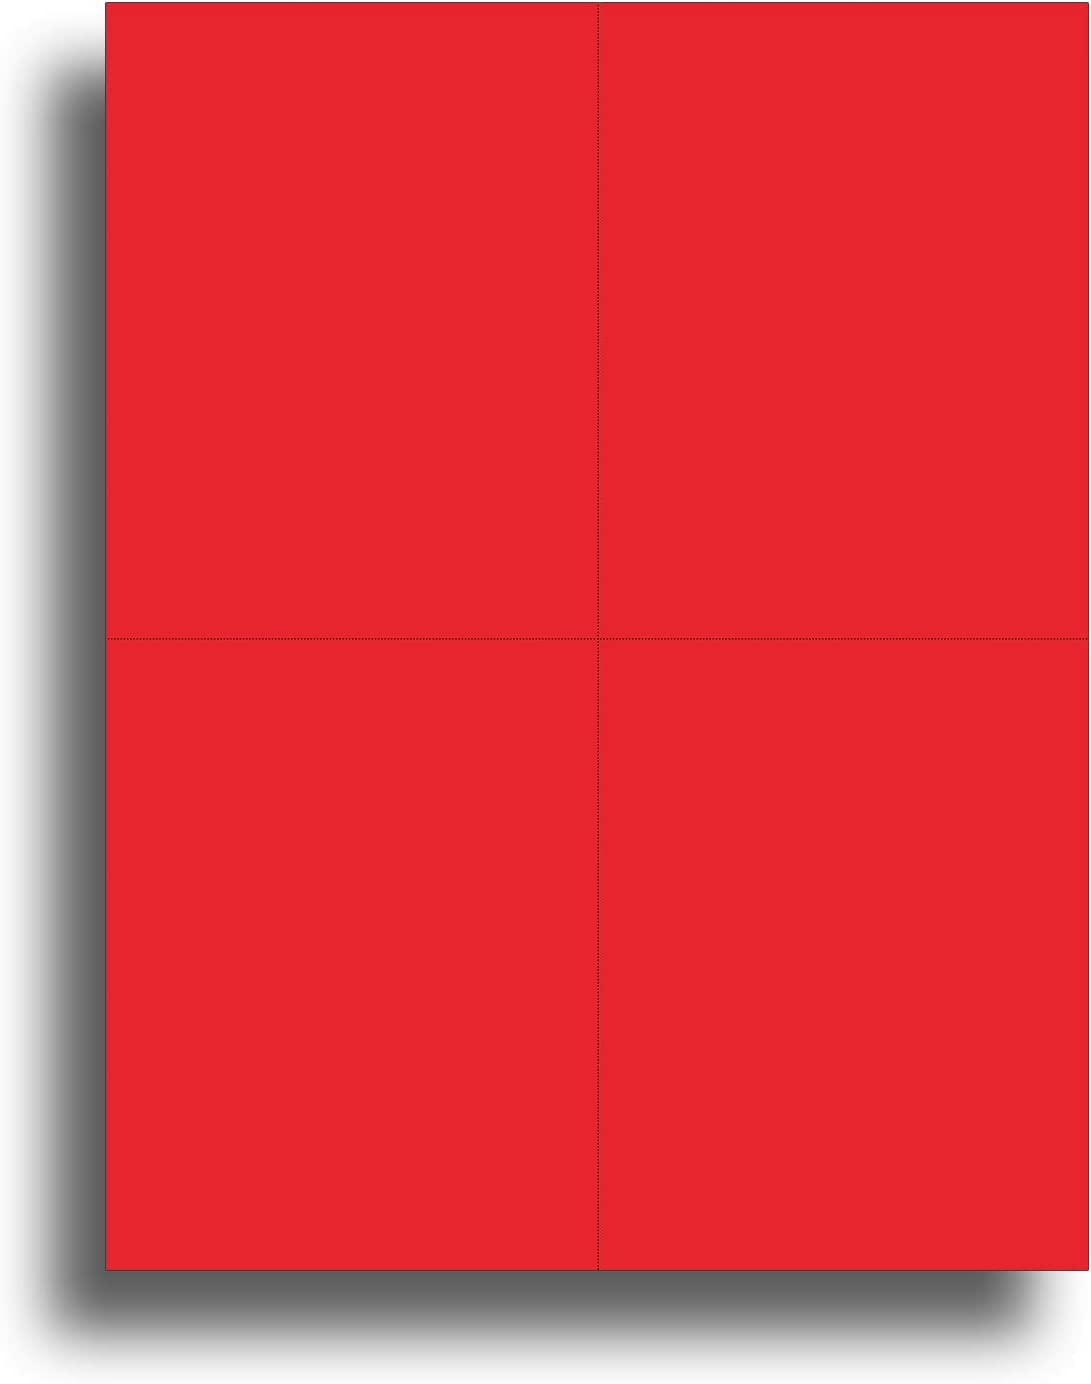 Blank Colored 4-up Postcard Paper by Desktop Publishing Supplies - 25 Sheets / 100 Postcards Pack - Printable with Laser or Inkjet Printer - Plain Matte Cardstock (Holiday Red)